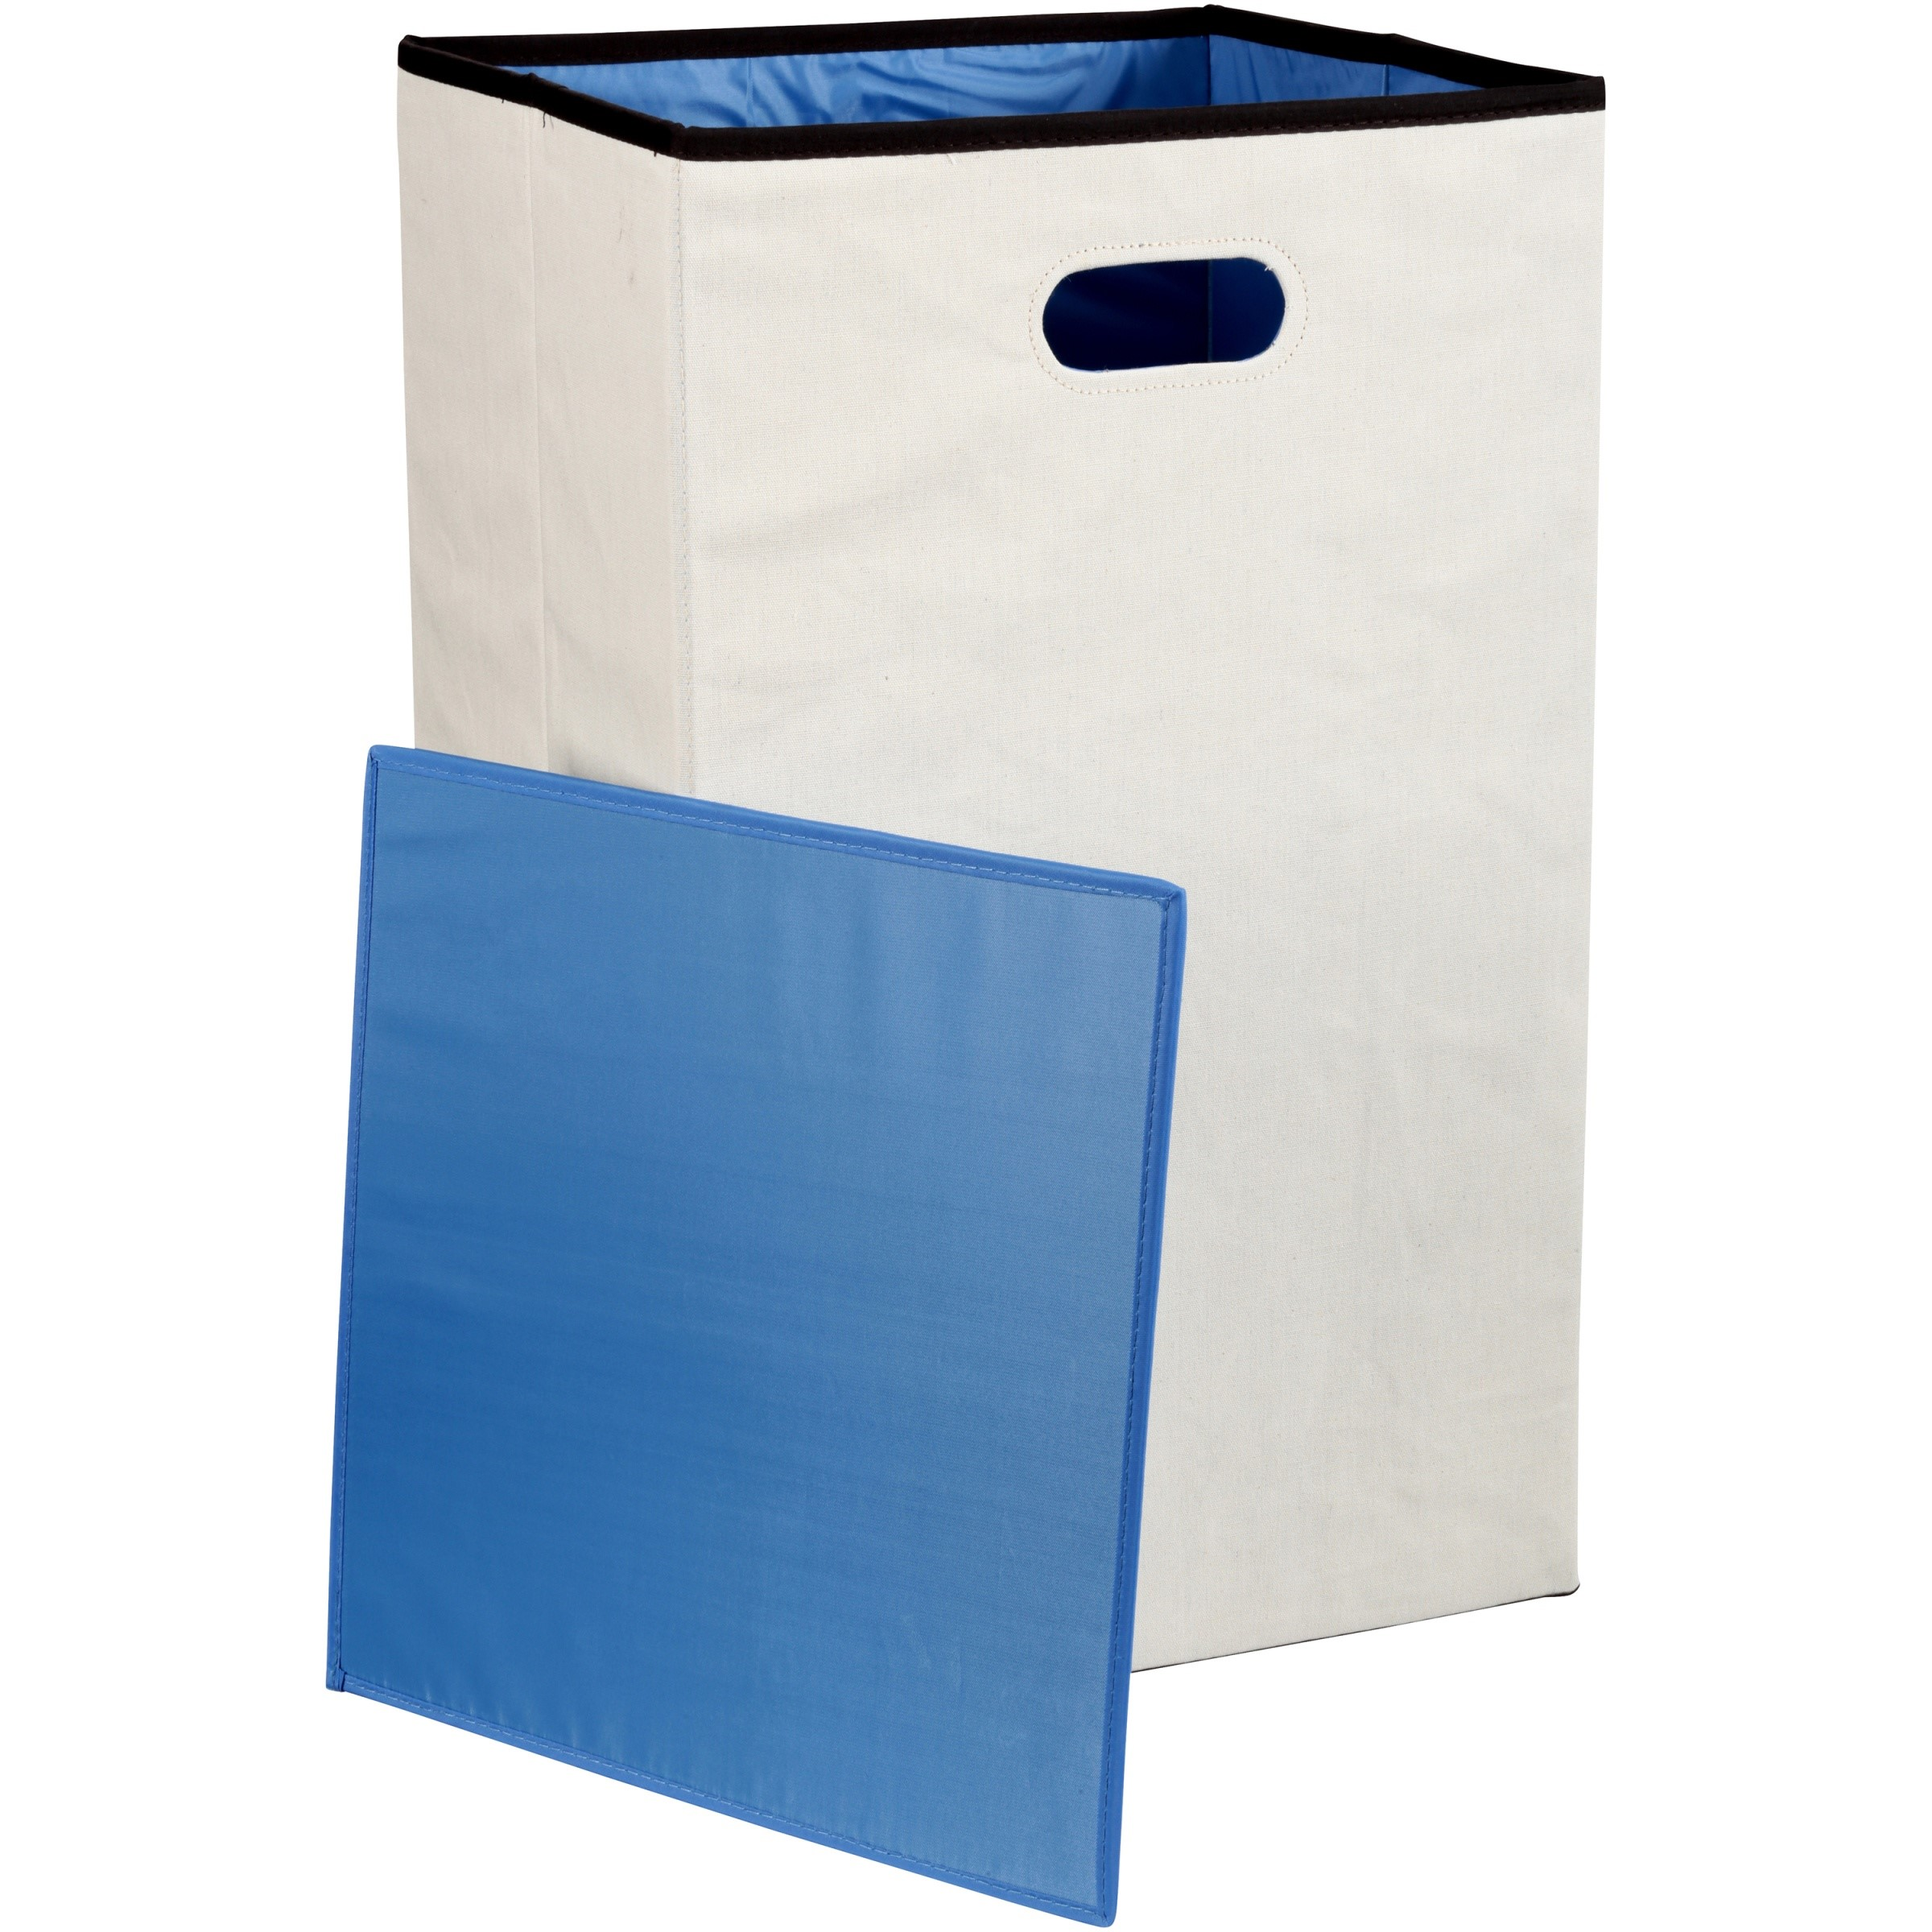 Rubbermaid® Configurations™ Collapsible Laundry Hamper